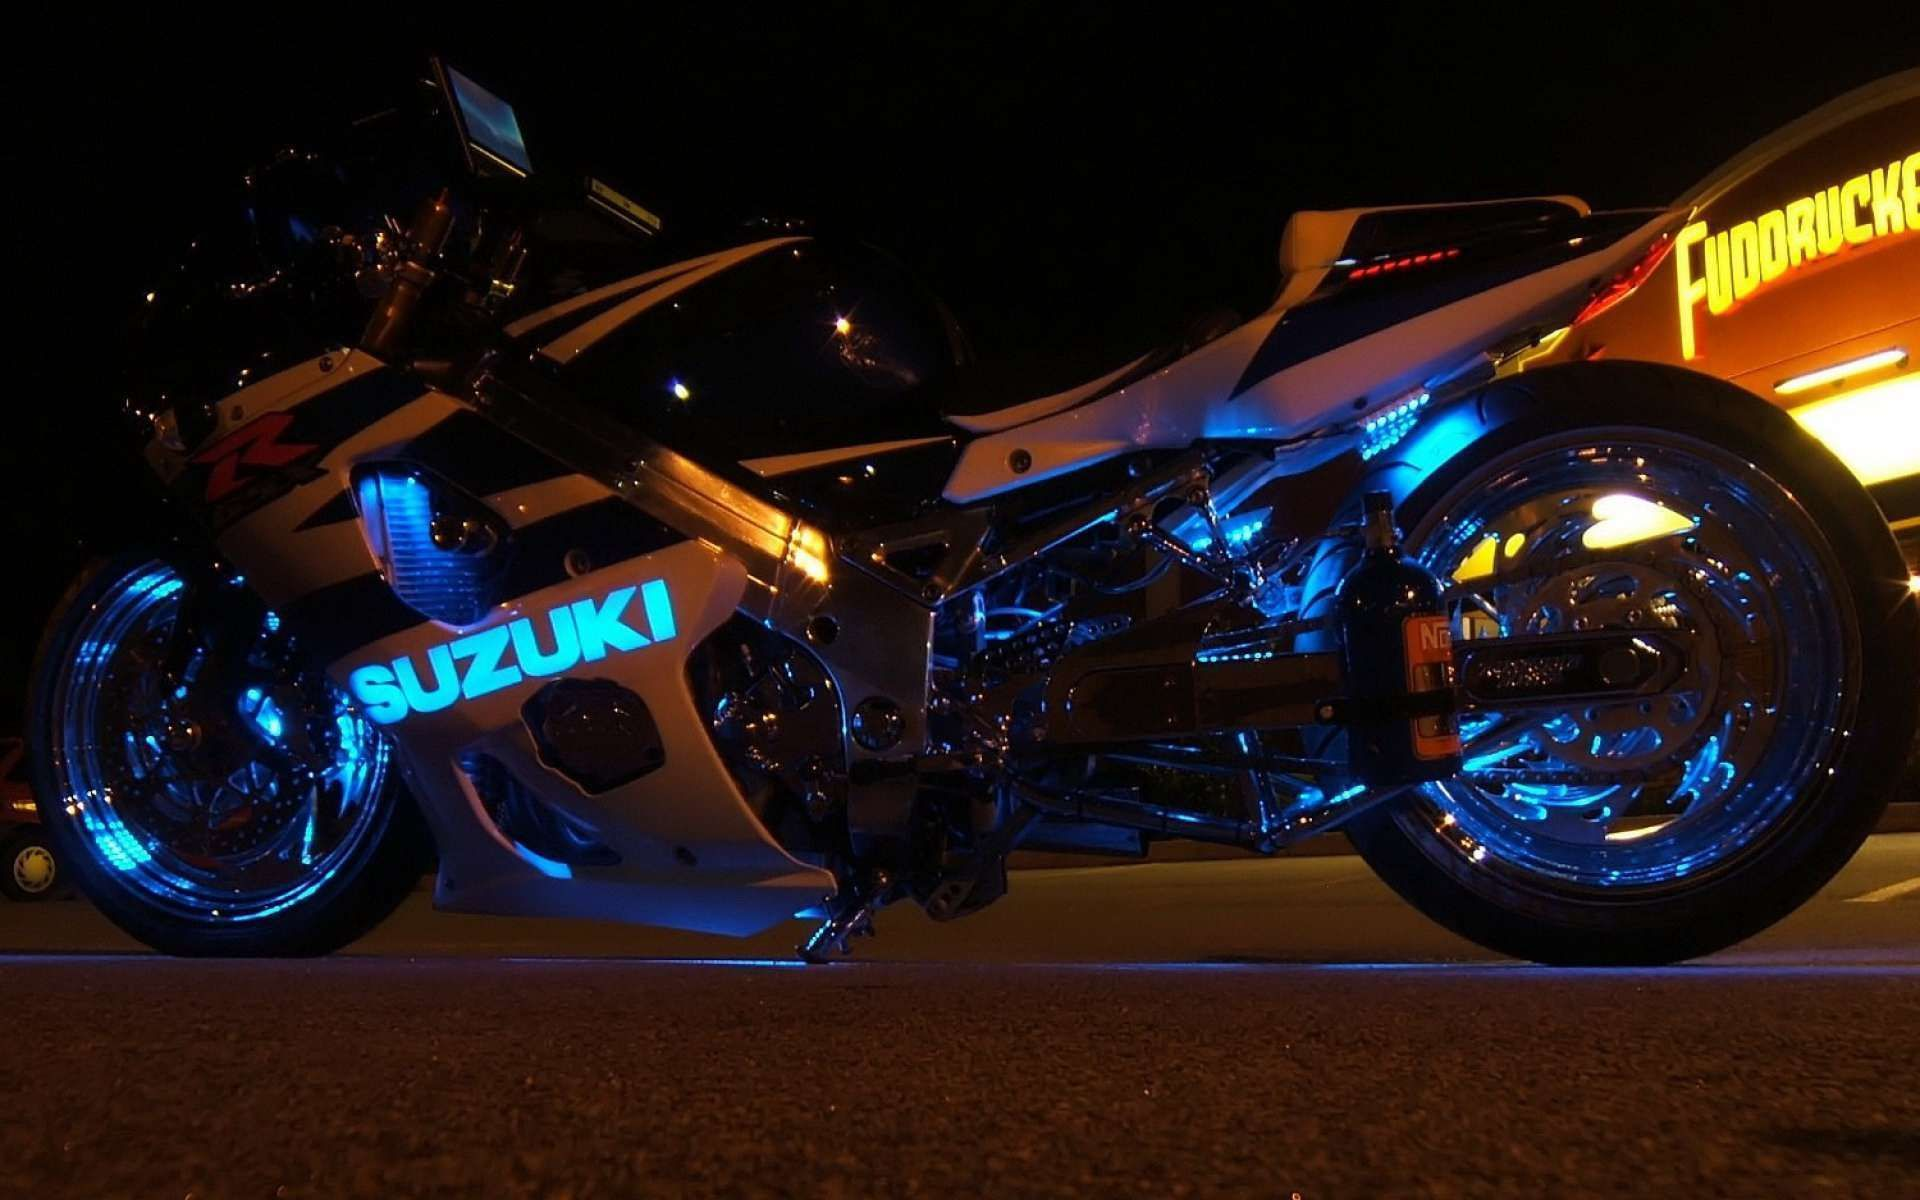 Pin By Hd Wallpapers On Bike Cars Wallpapers Motorcycle Neon